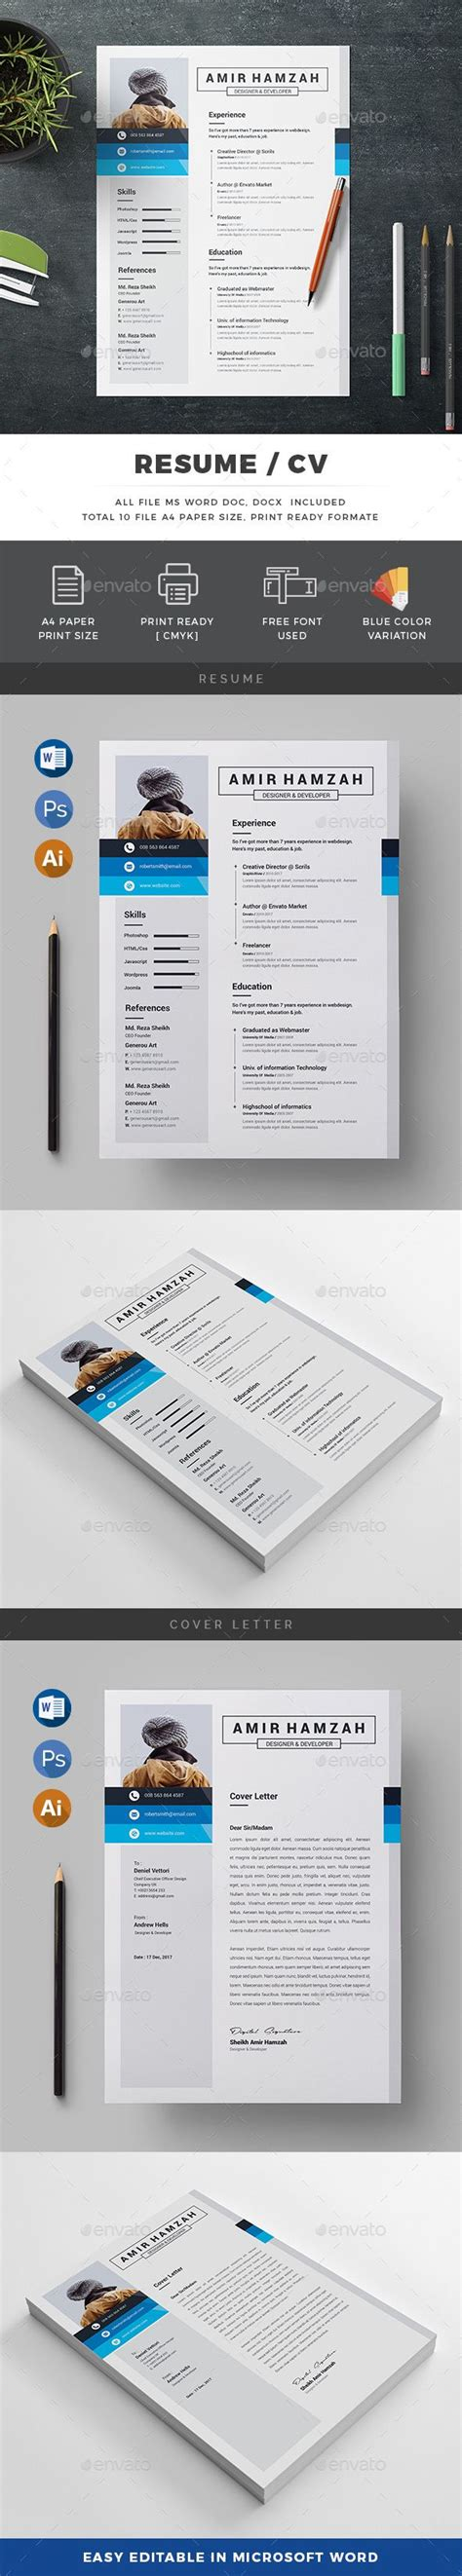 sle resume for 2 years experience in net best 20 resume templates ideas on no signup